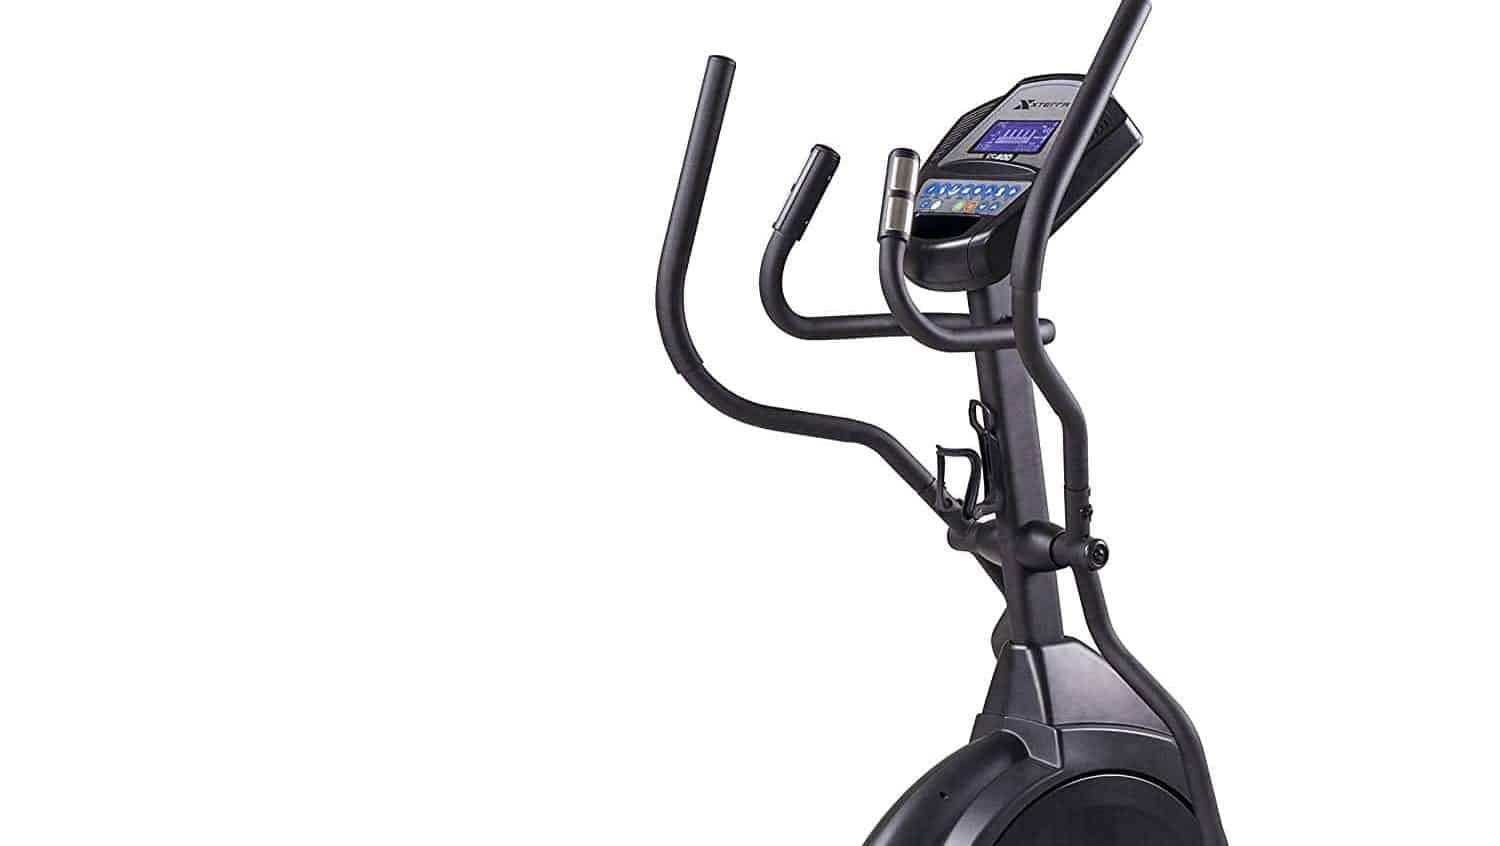 XTERRA Fitness FS400 Elliptical Trainer Review